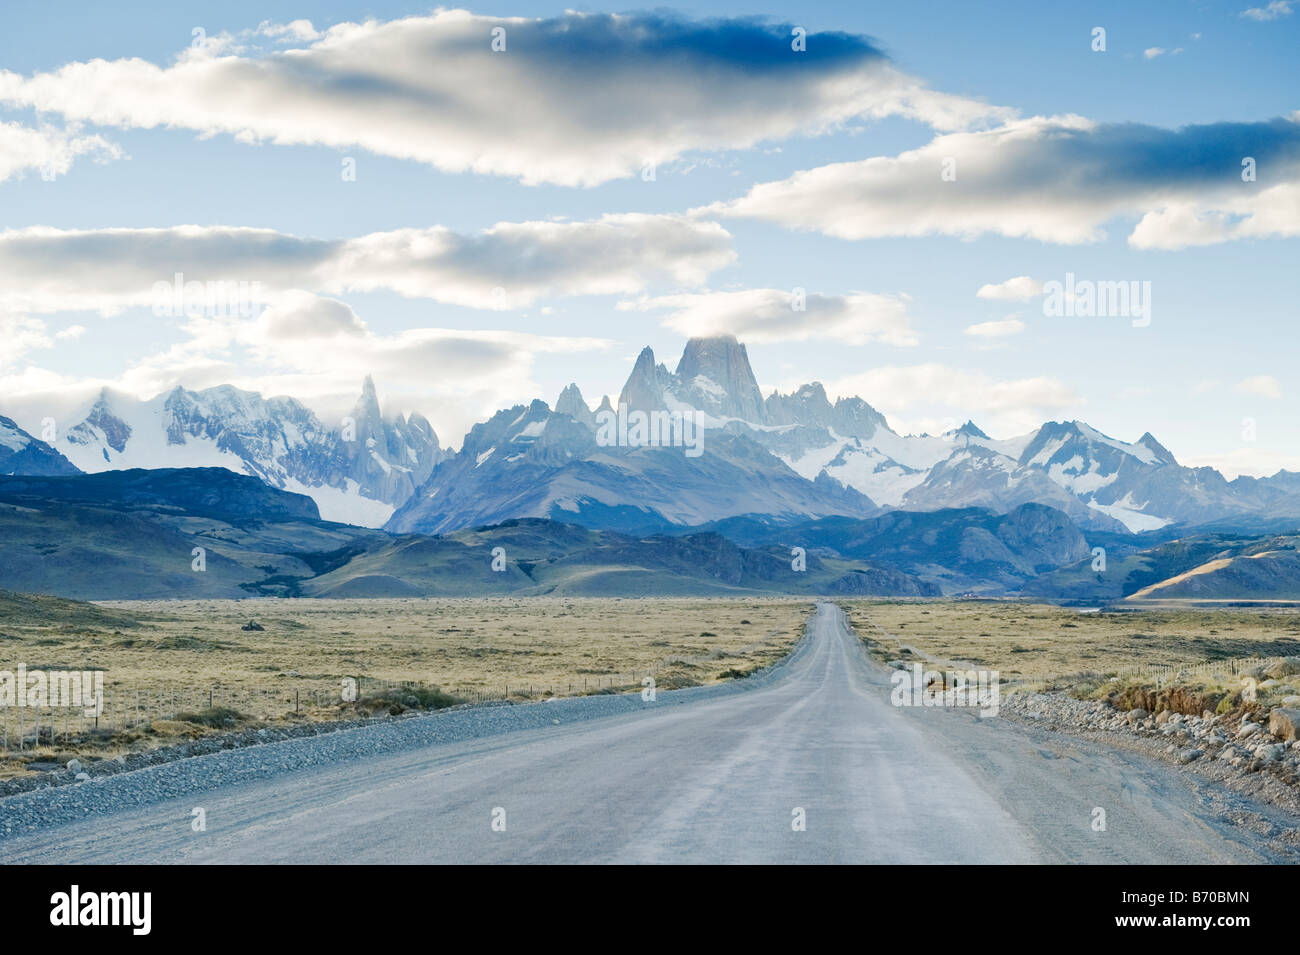 Looking down the road that leads to Chalten and Los Glaciares National Park, Argentina. - Stock Image